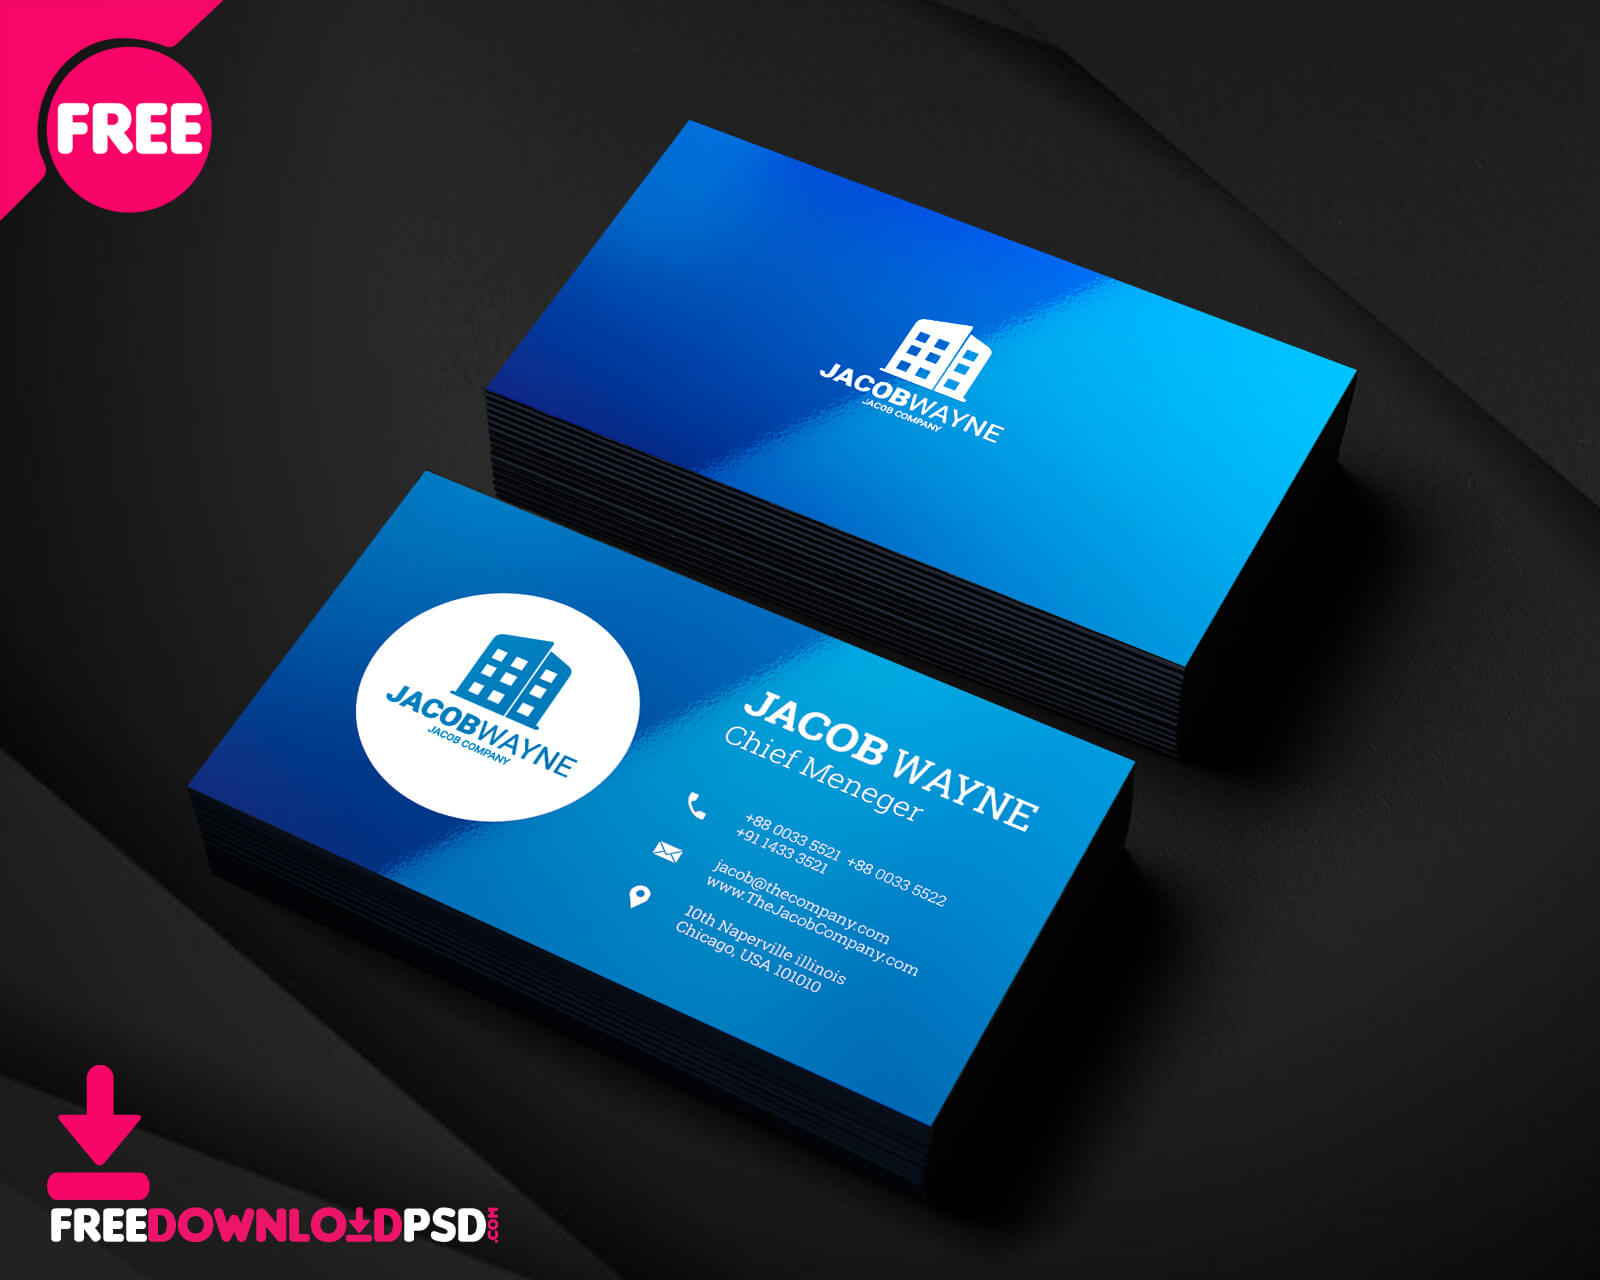 Real Estate Business Card Psd   Freedownloadpsd intended for Psd Visiting Card Templates